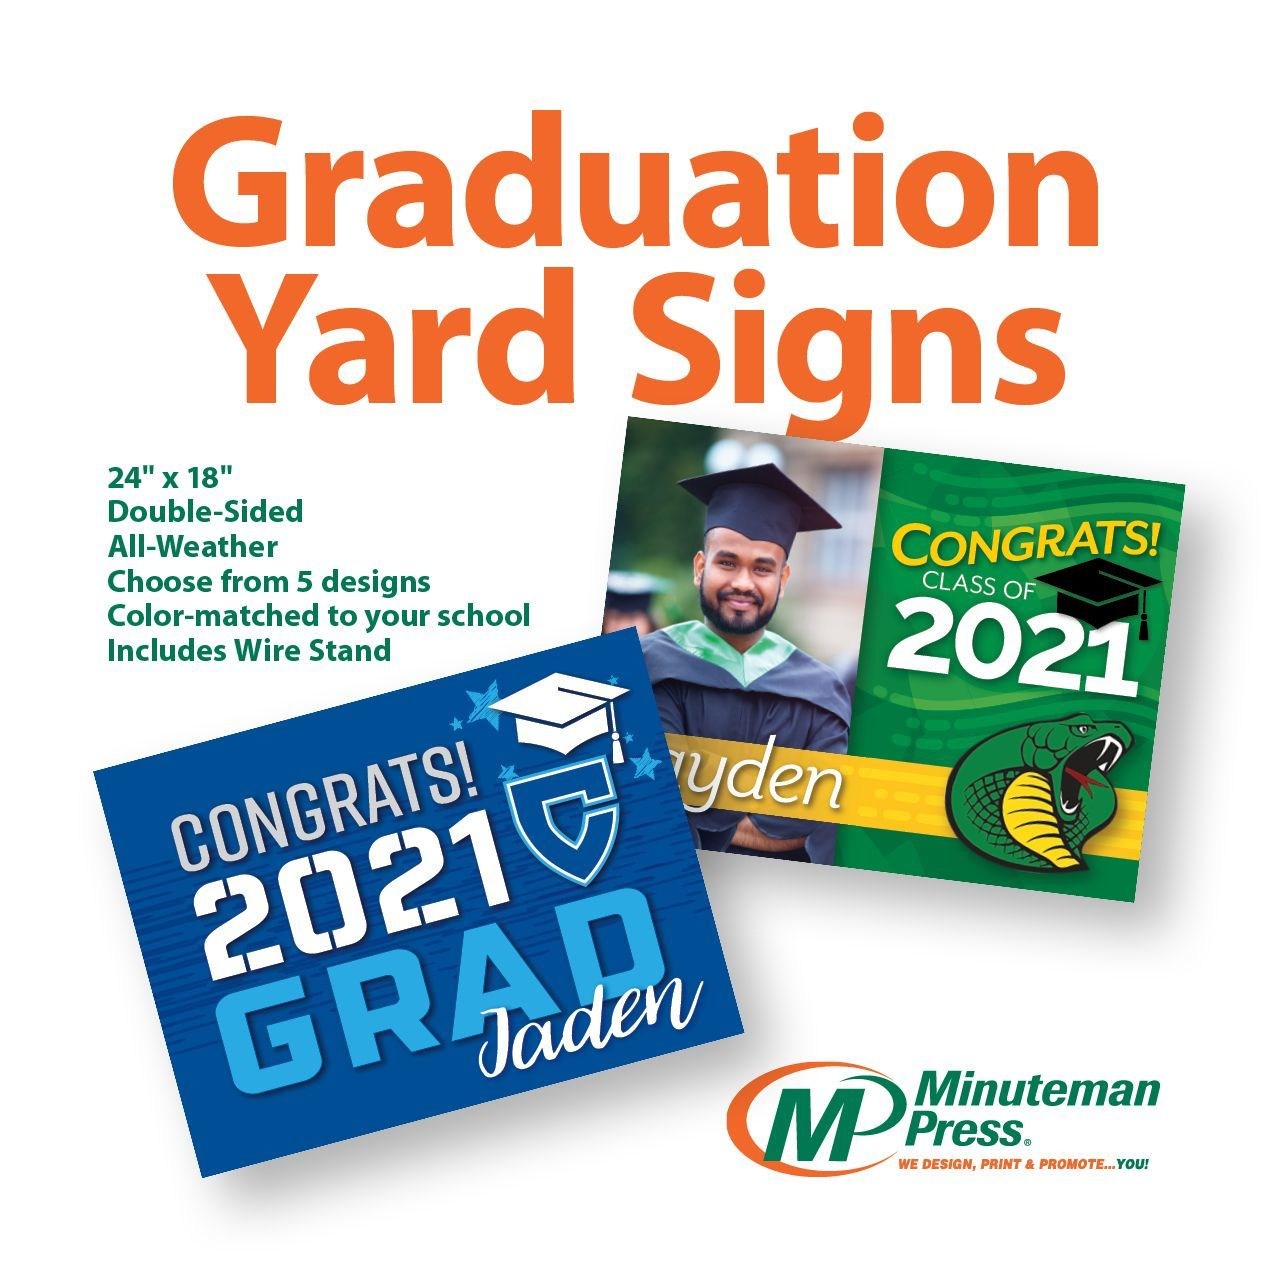 Graduation season is upon us! Celebrate your special graduate with a yard sign customized to their school colors! Choose from our designs with options to personalize. Only $11 standard/$20 for personalized or photo design. Call 217-355-0500 to order.